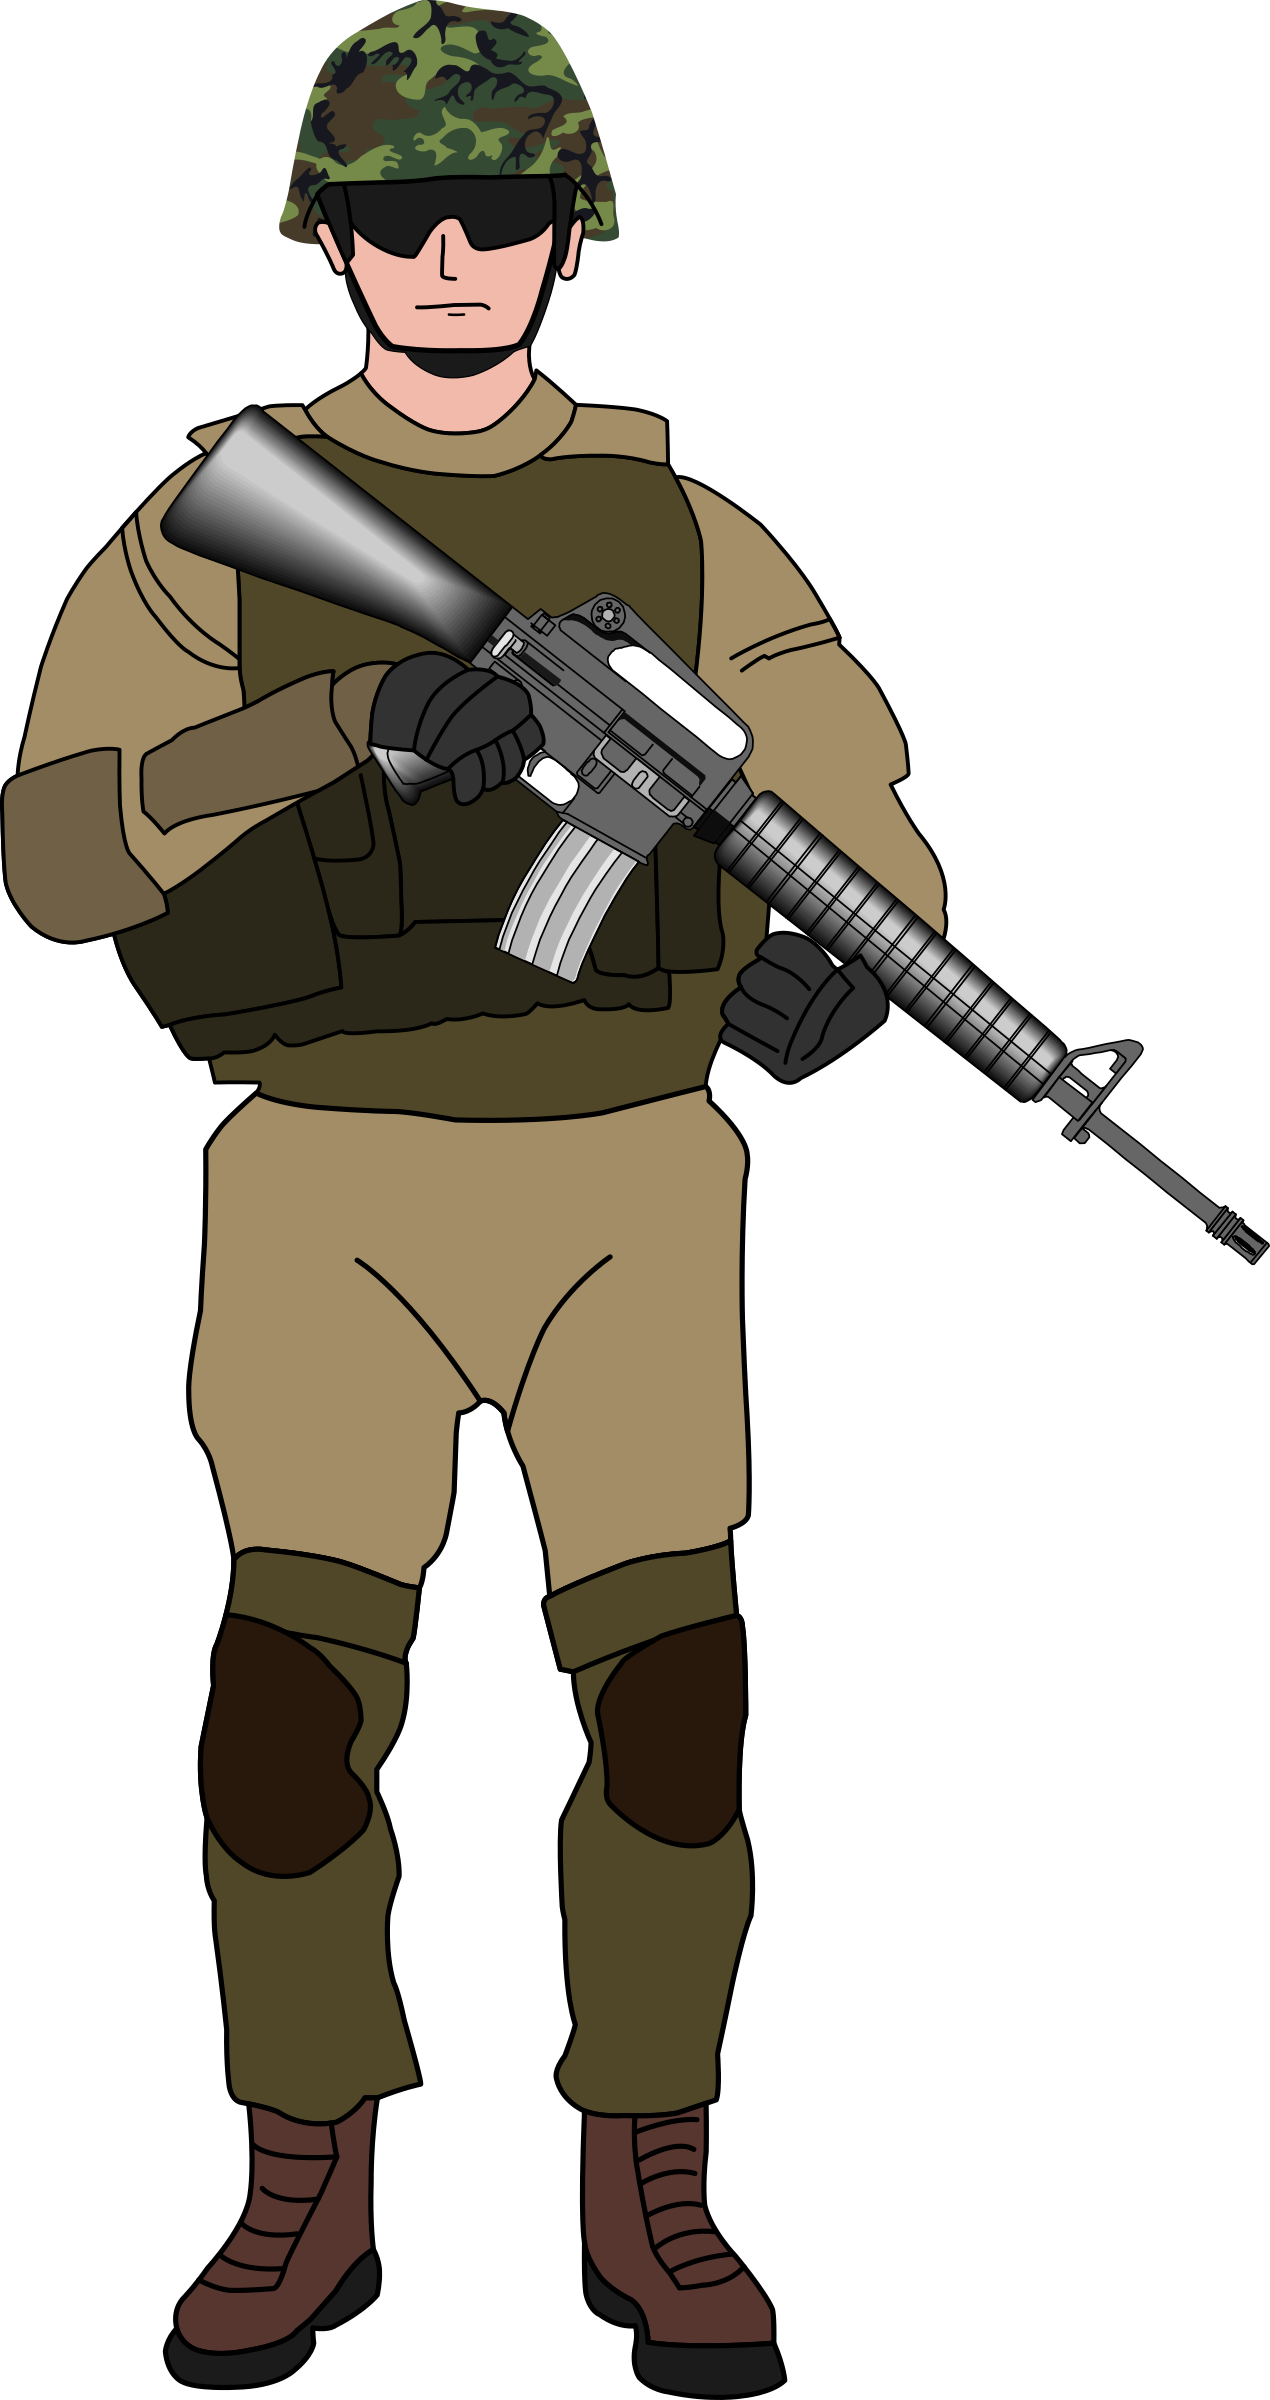 Soldier. Military clipart military child